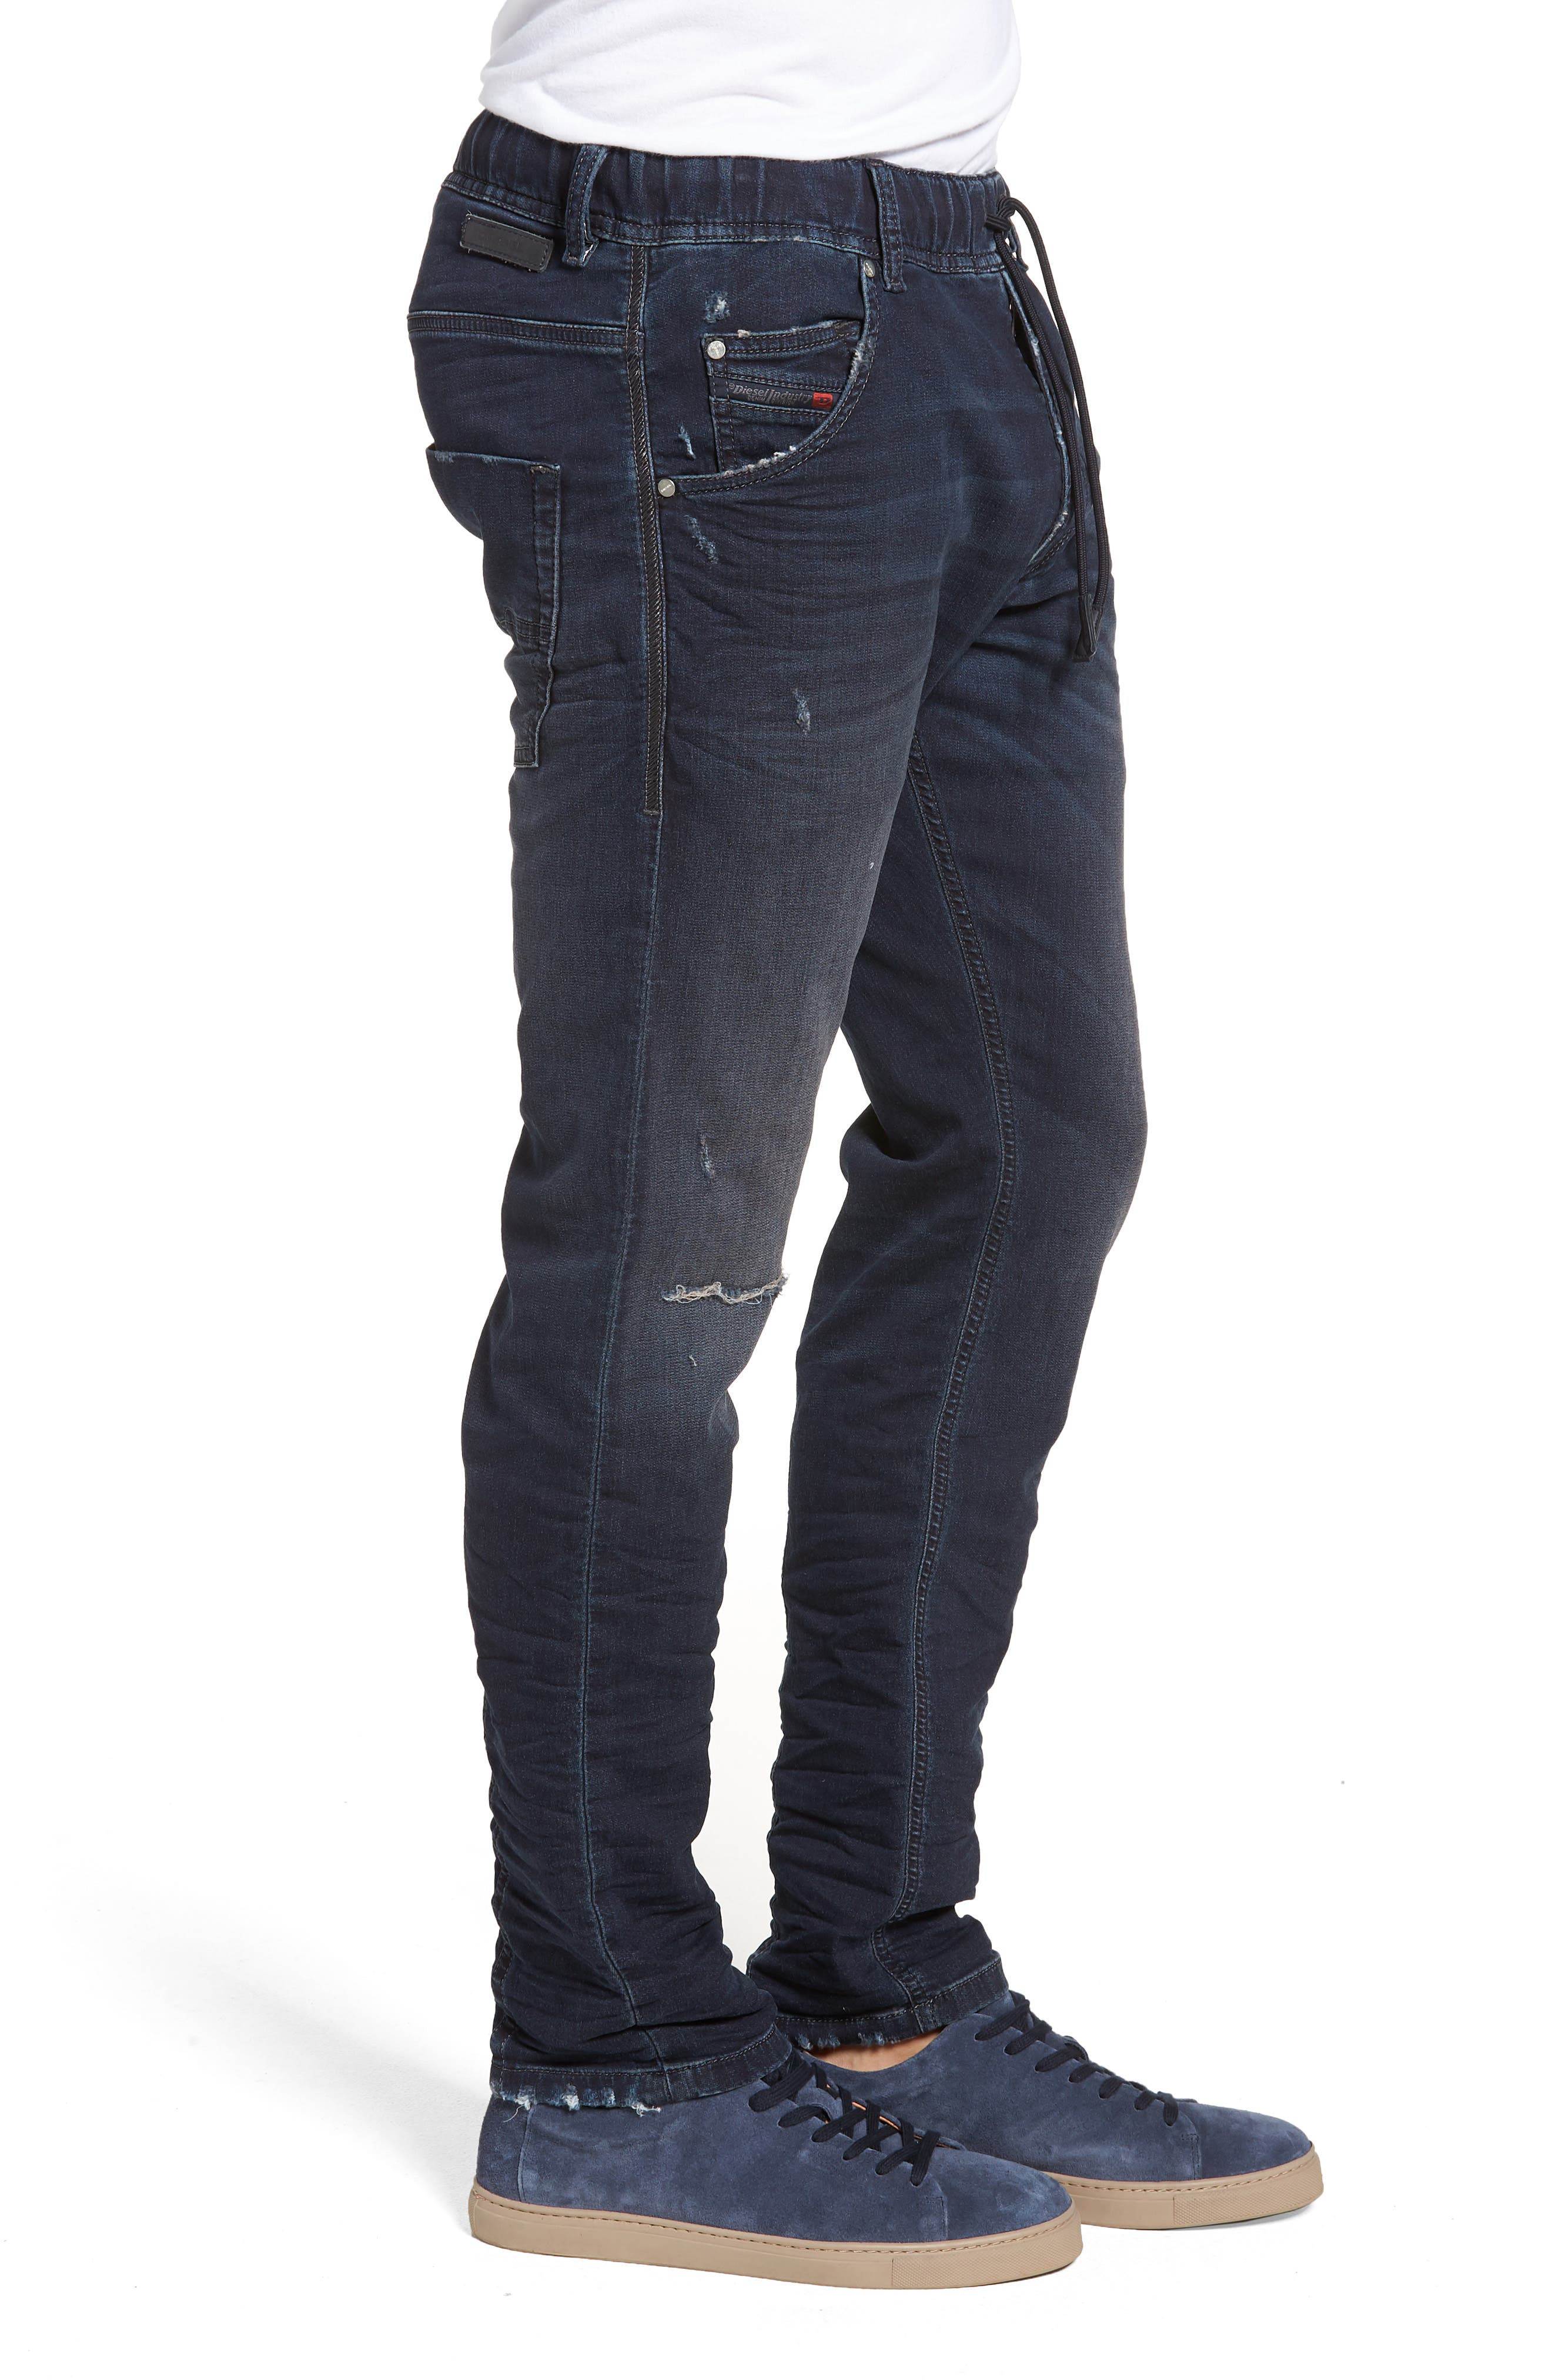 Krooley Skinny Slouchy Fit Jeans,                             Alternate thumbnail 3, color,                             0699W